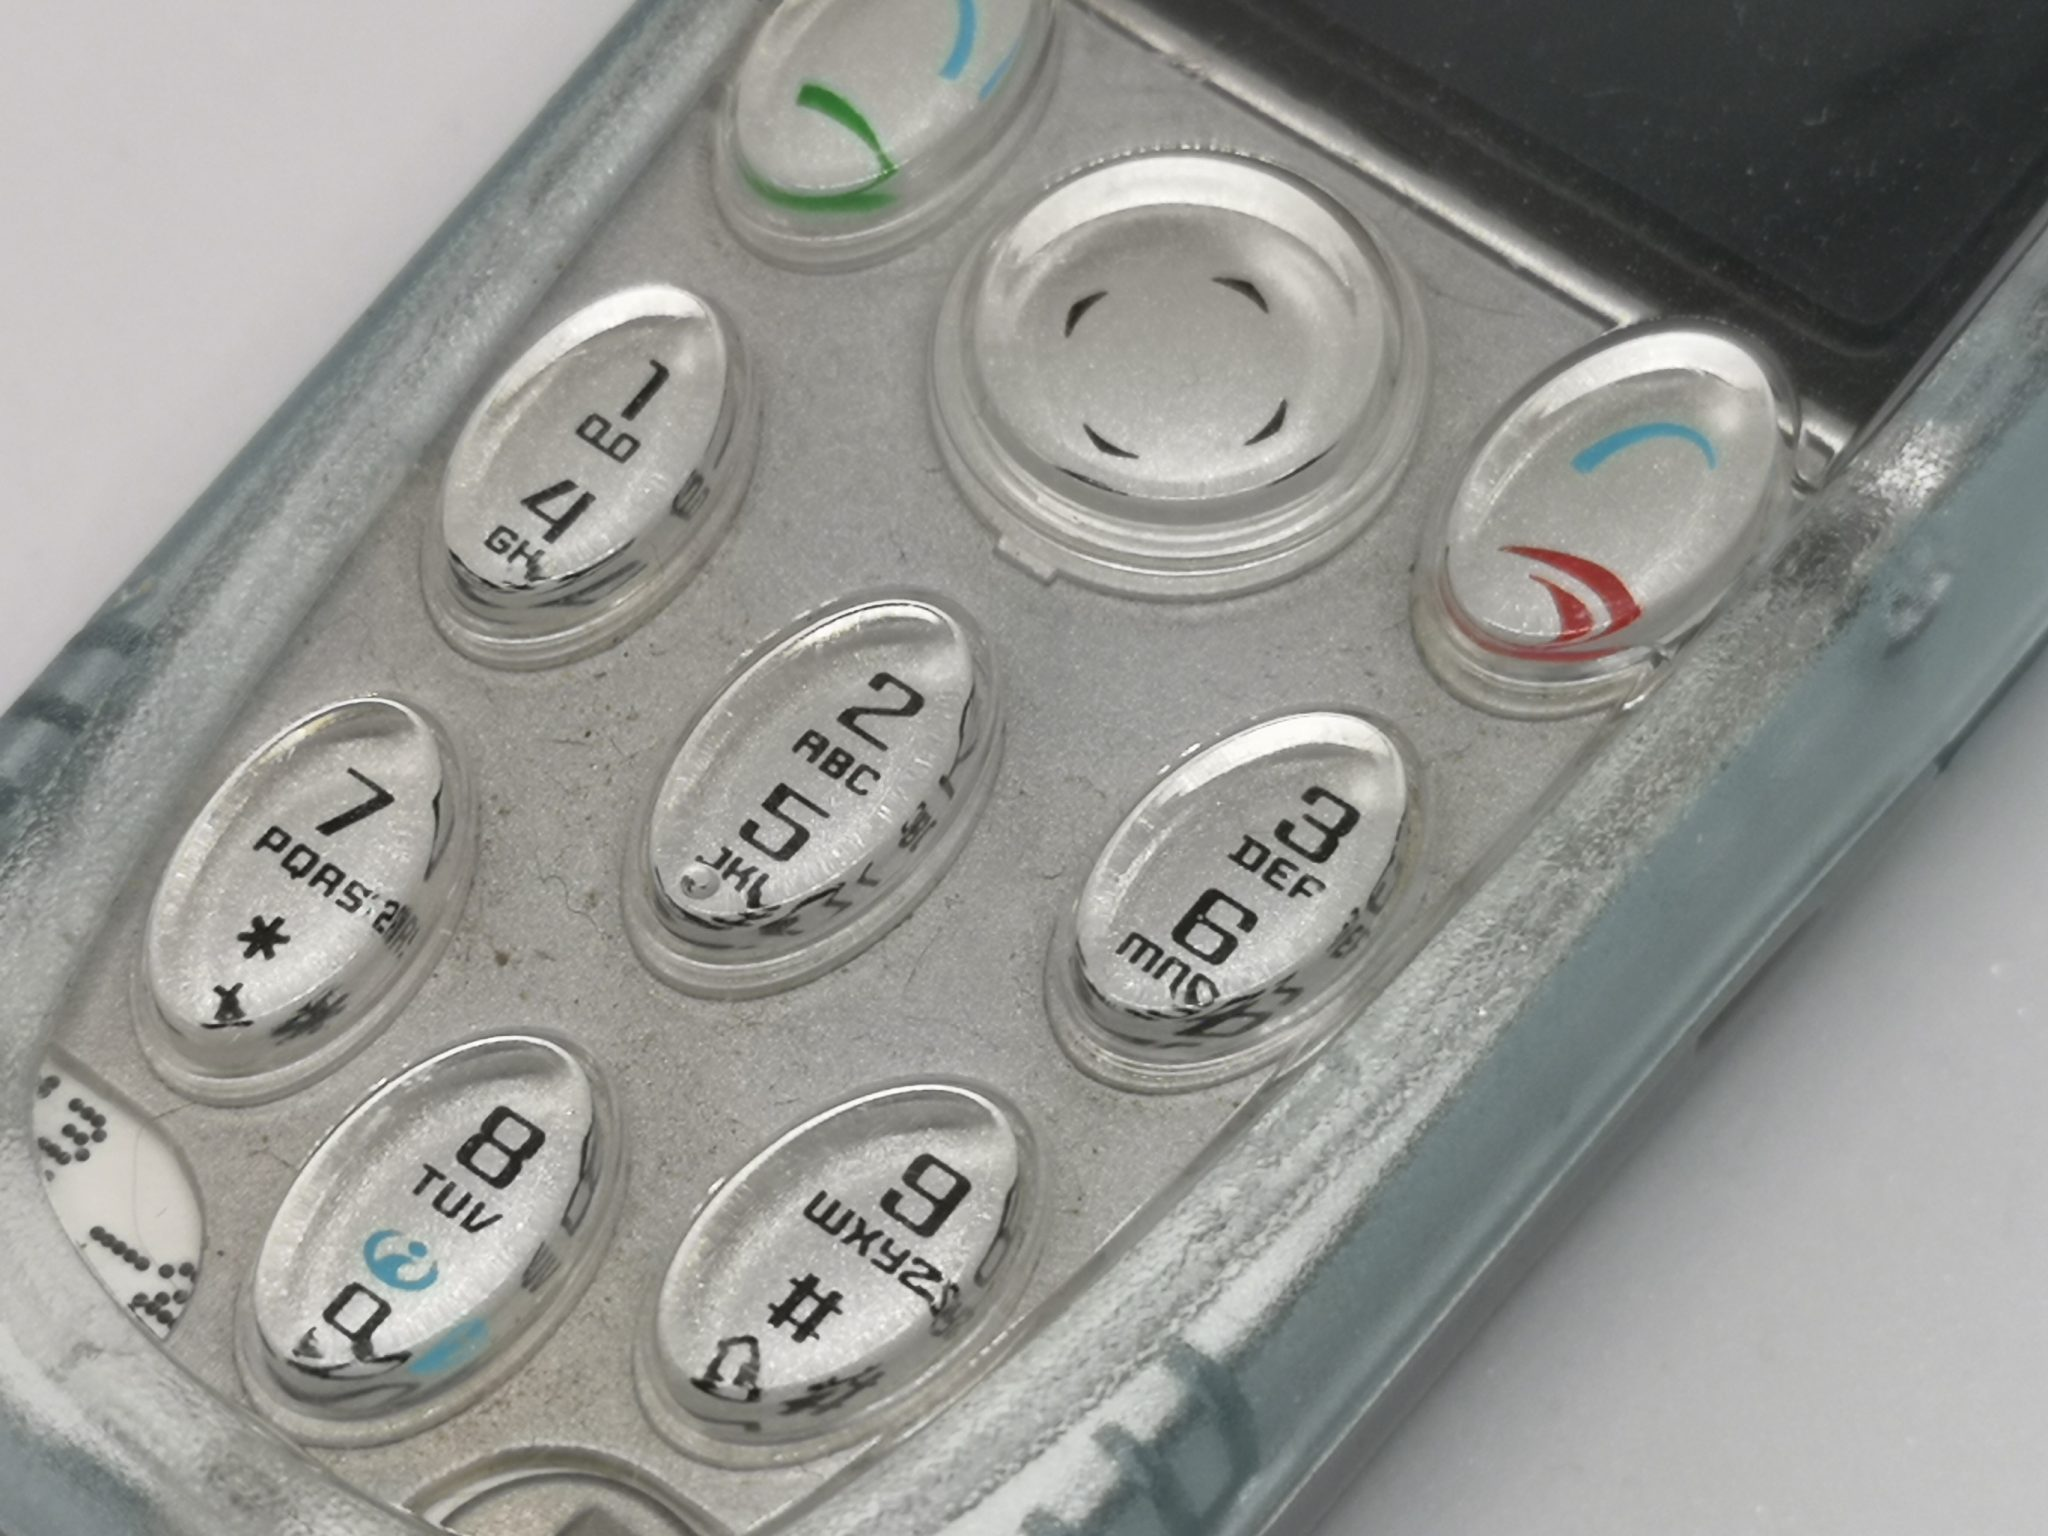 Nokia 3200 Vintage Mobile Phone Review - Transparent and Customisable